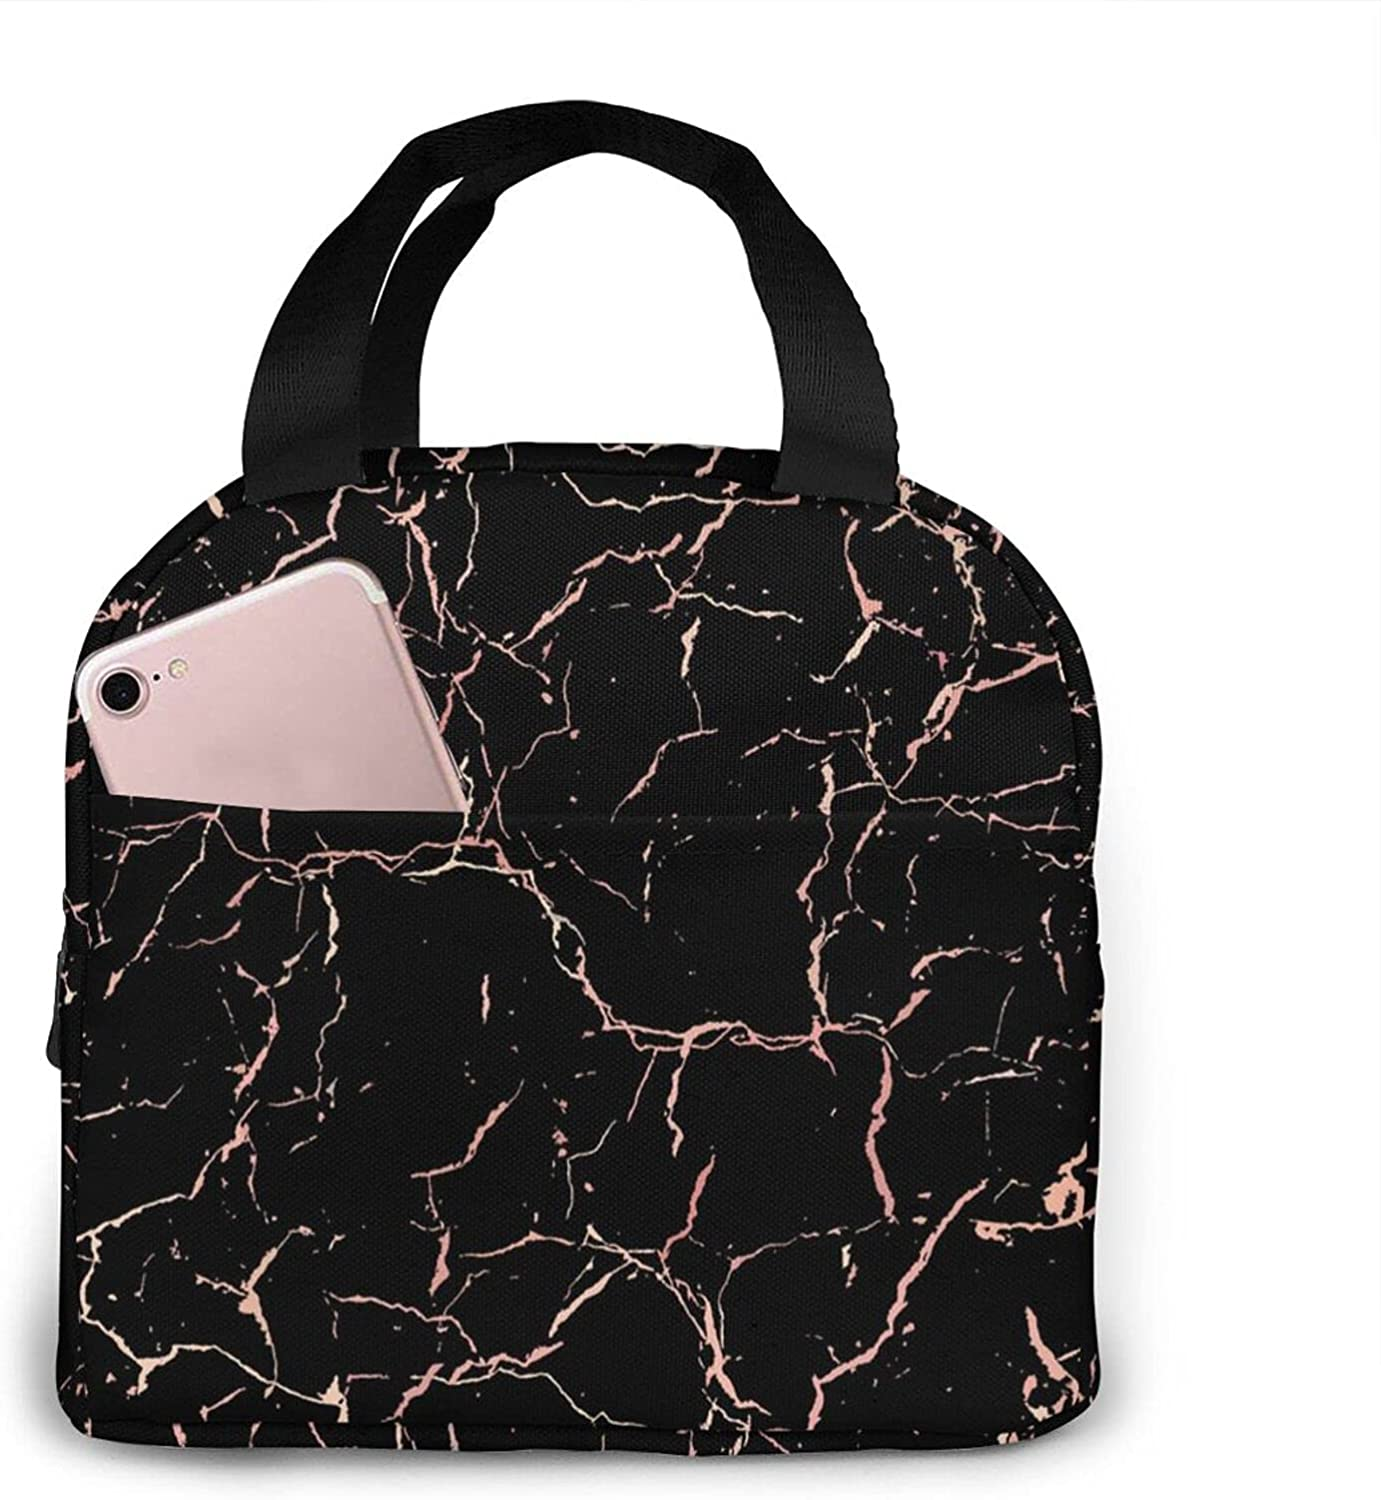 Lunch Bag,Rose Gold Black Marble Insulated Reusable Lunch Box,Women Men Boys Girls Cooler Lunch Tote Bag Cute Leakproof Lunch Box Container Picnic